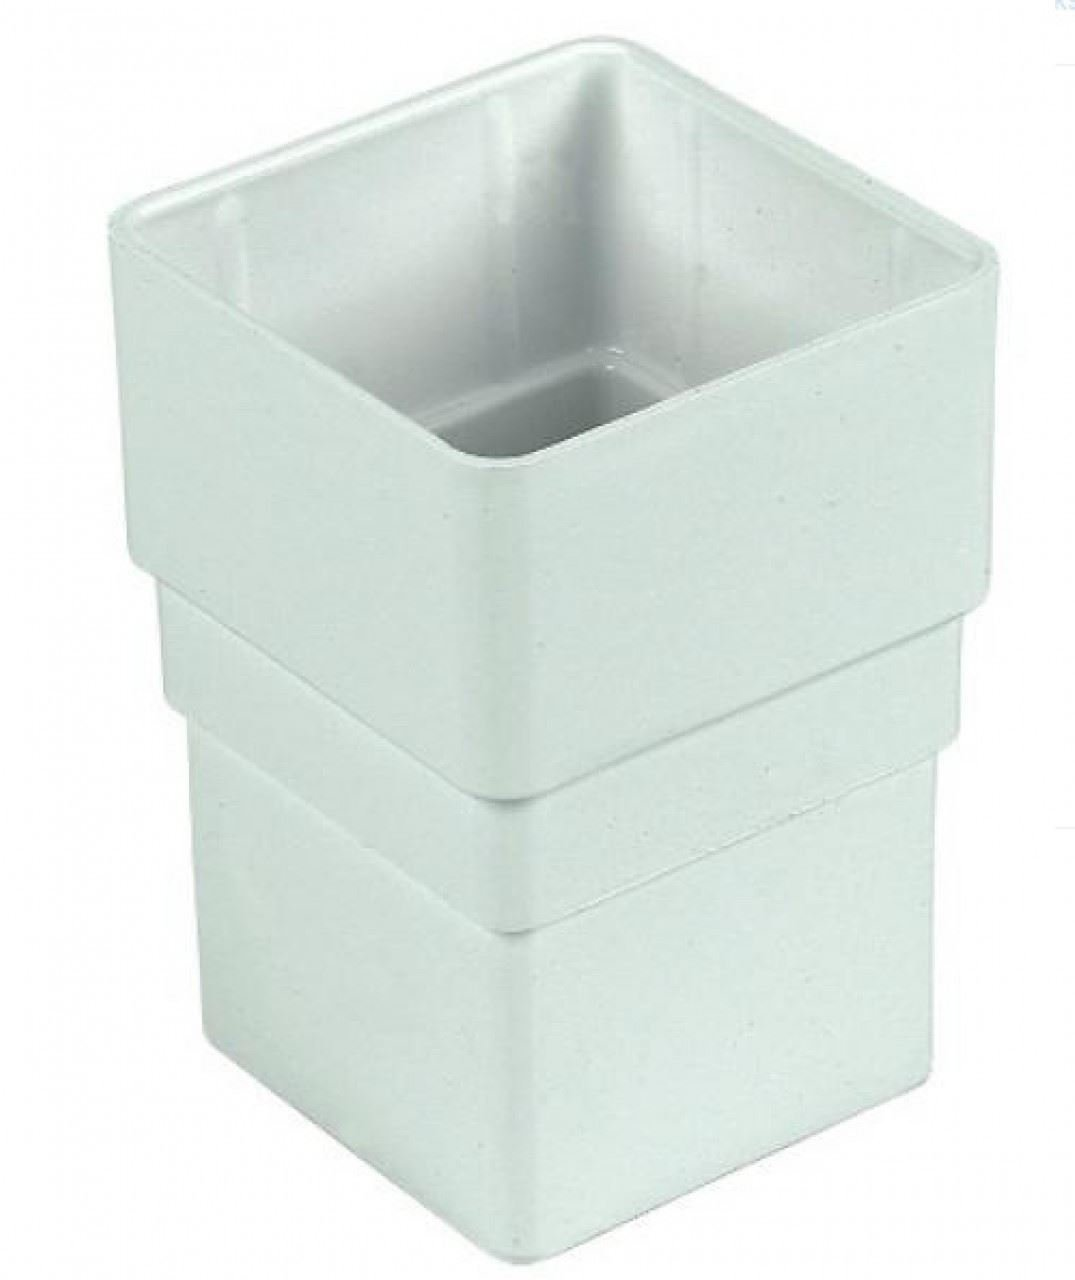 FLOPLAST 65mm Square Downpipe Socket - White - Pack of 2